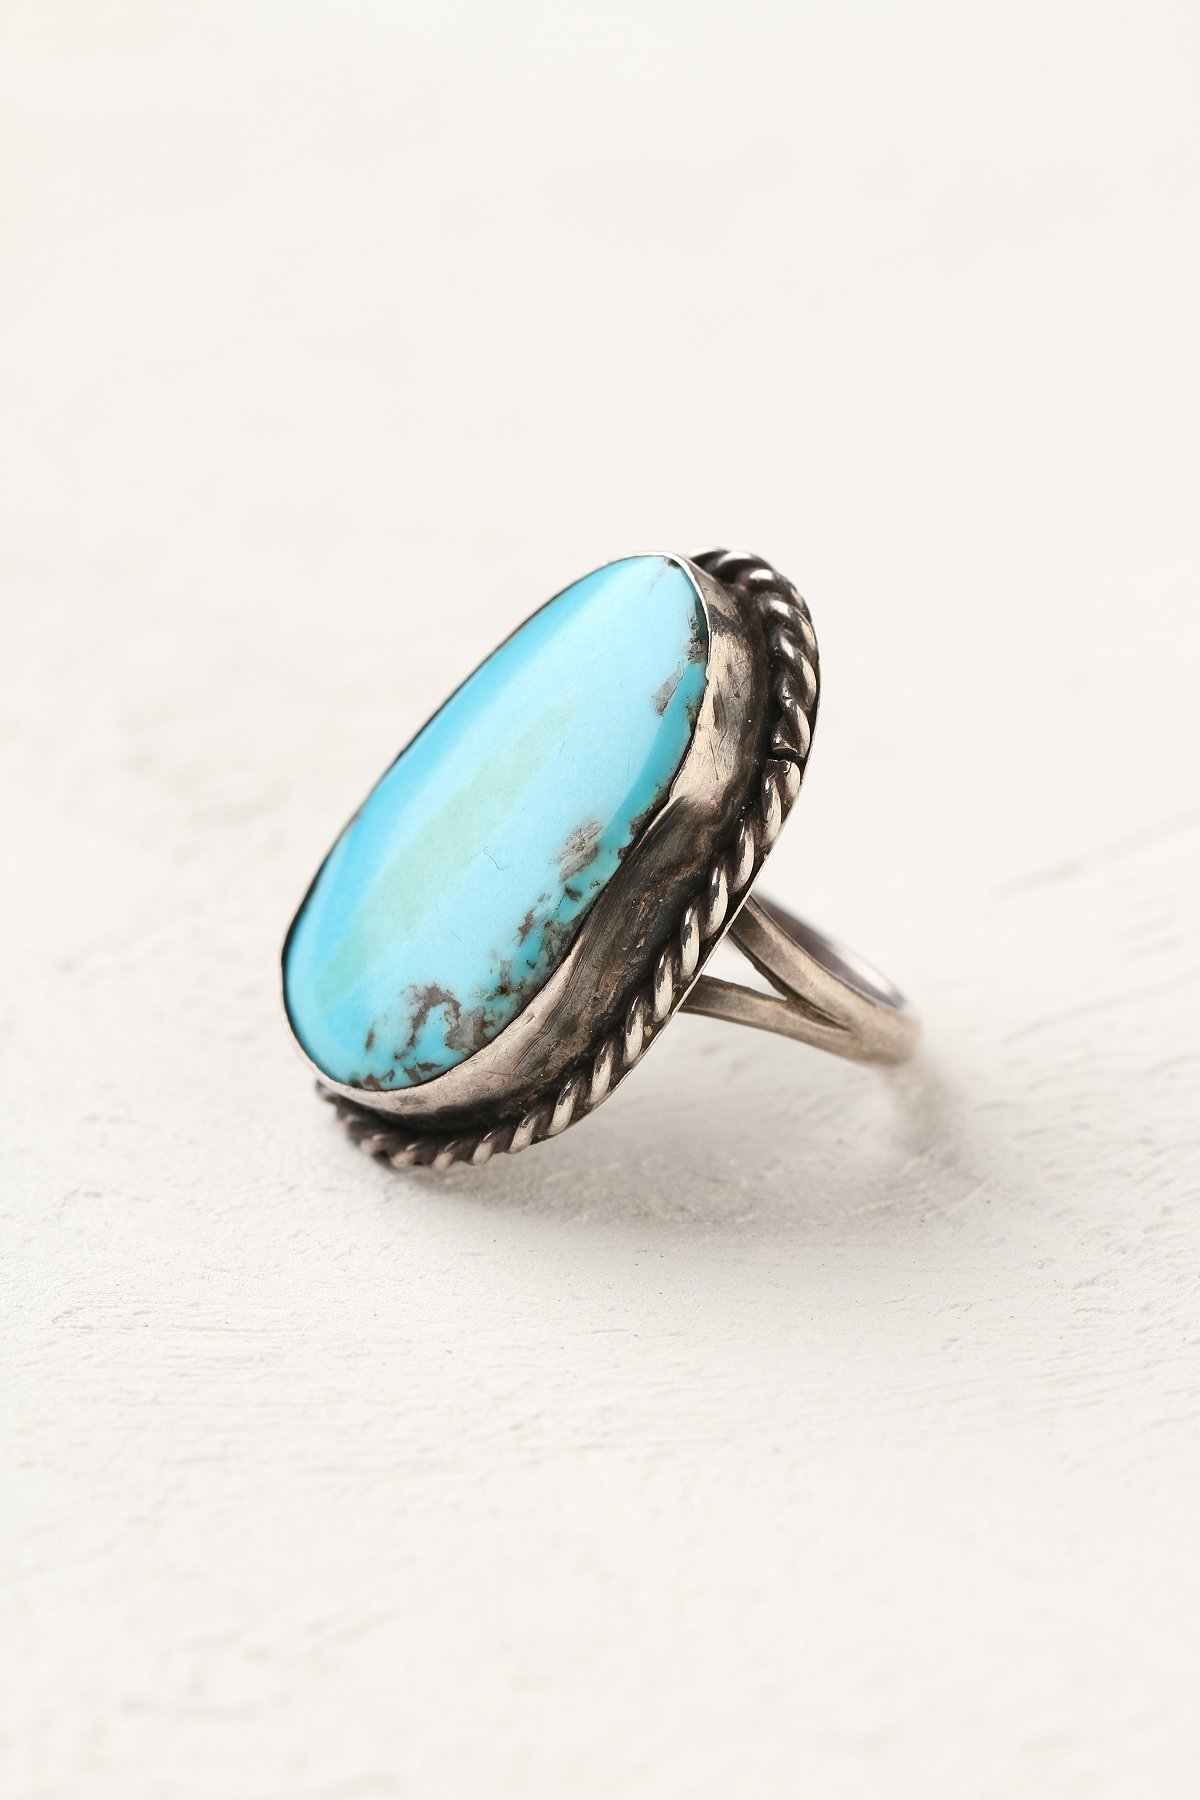 Vintage Silver Turquoise Ring